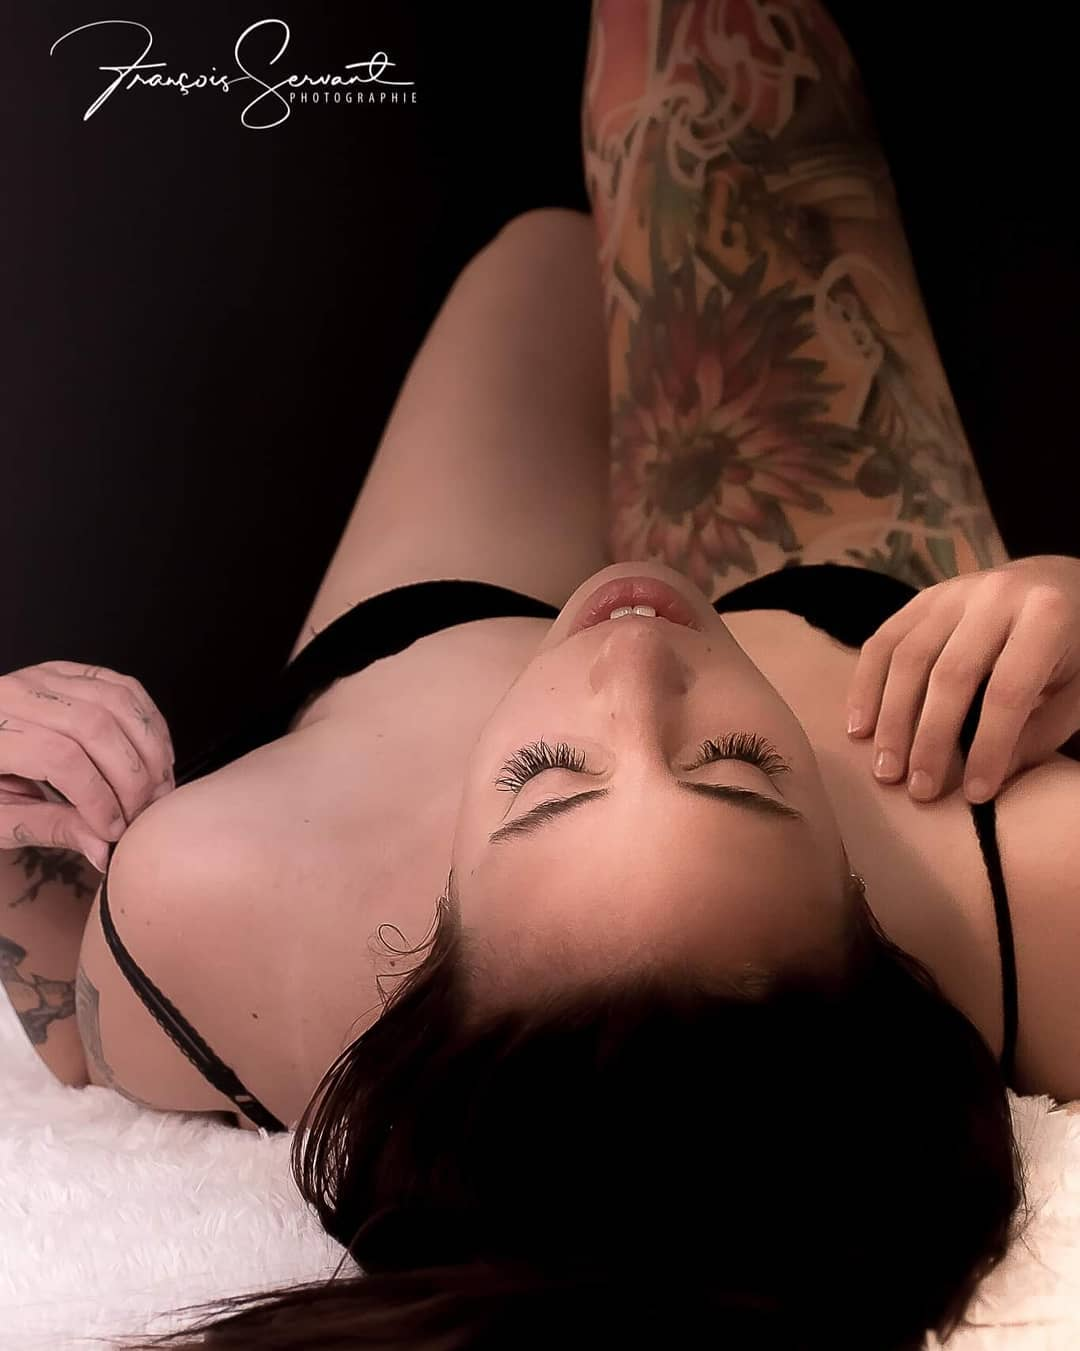 Beautiful Canadian model Stephanie Chouinard @stephaniechouinard lying on her back wearing lingerie showing her inked thigh in a boudoir photo session by photographer Francois Servant @photographie.frservant